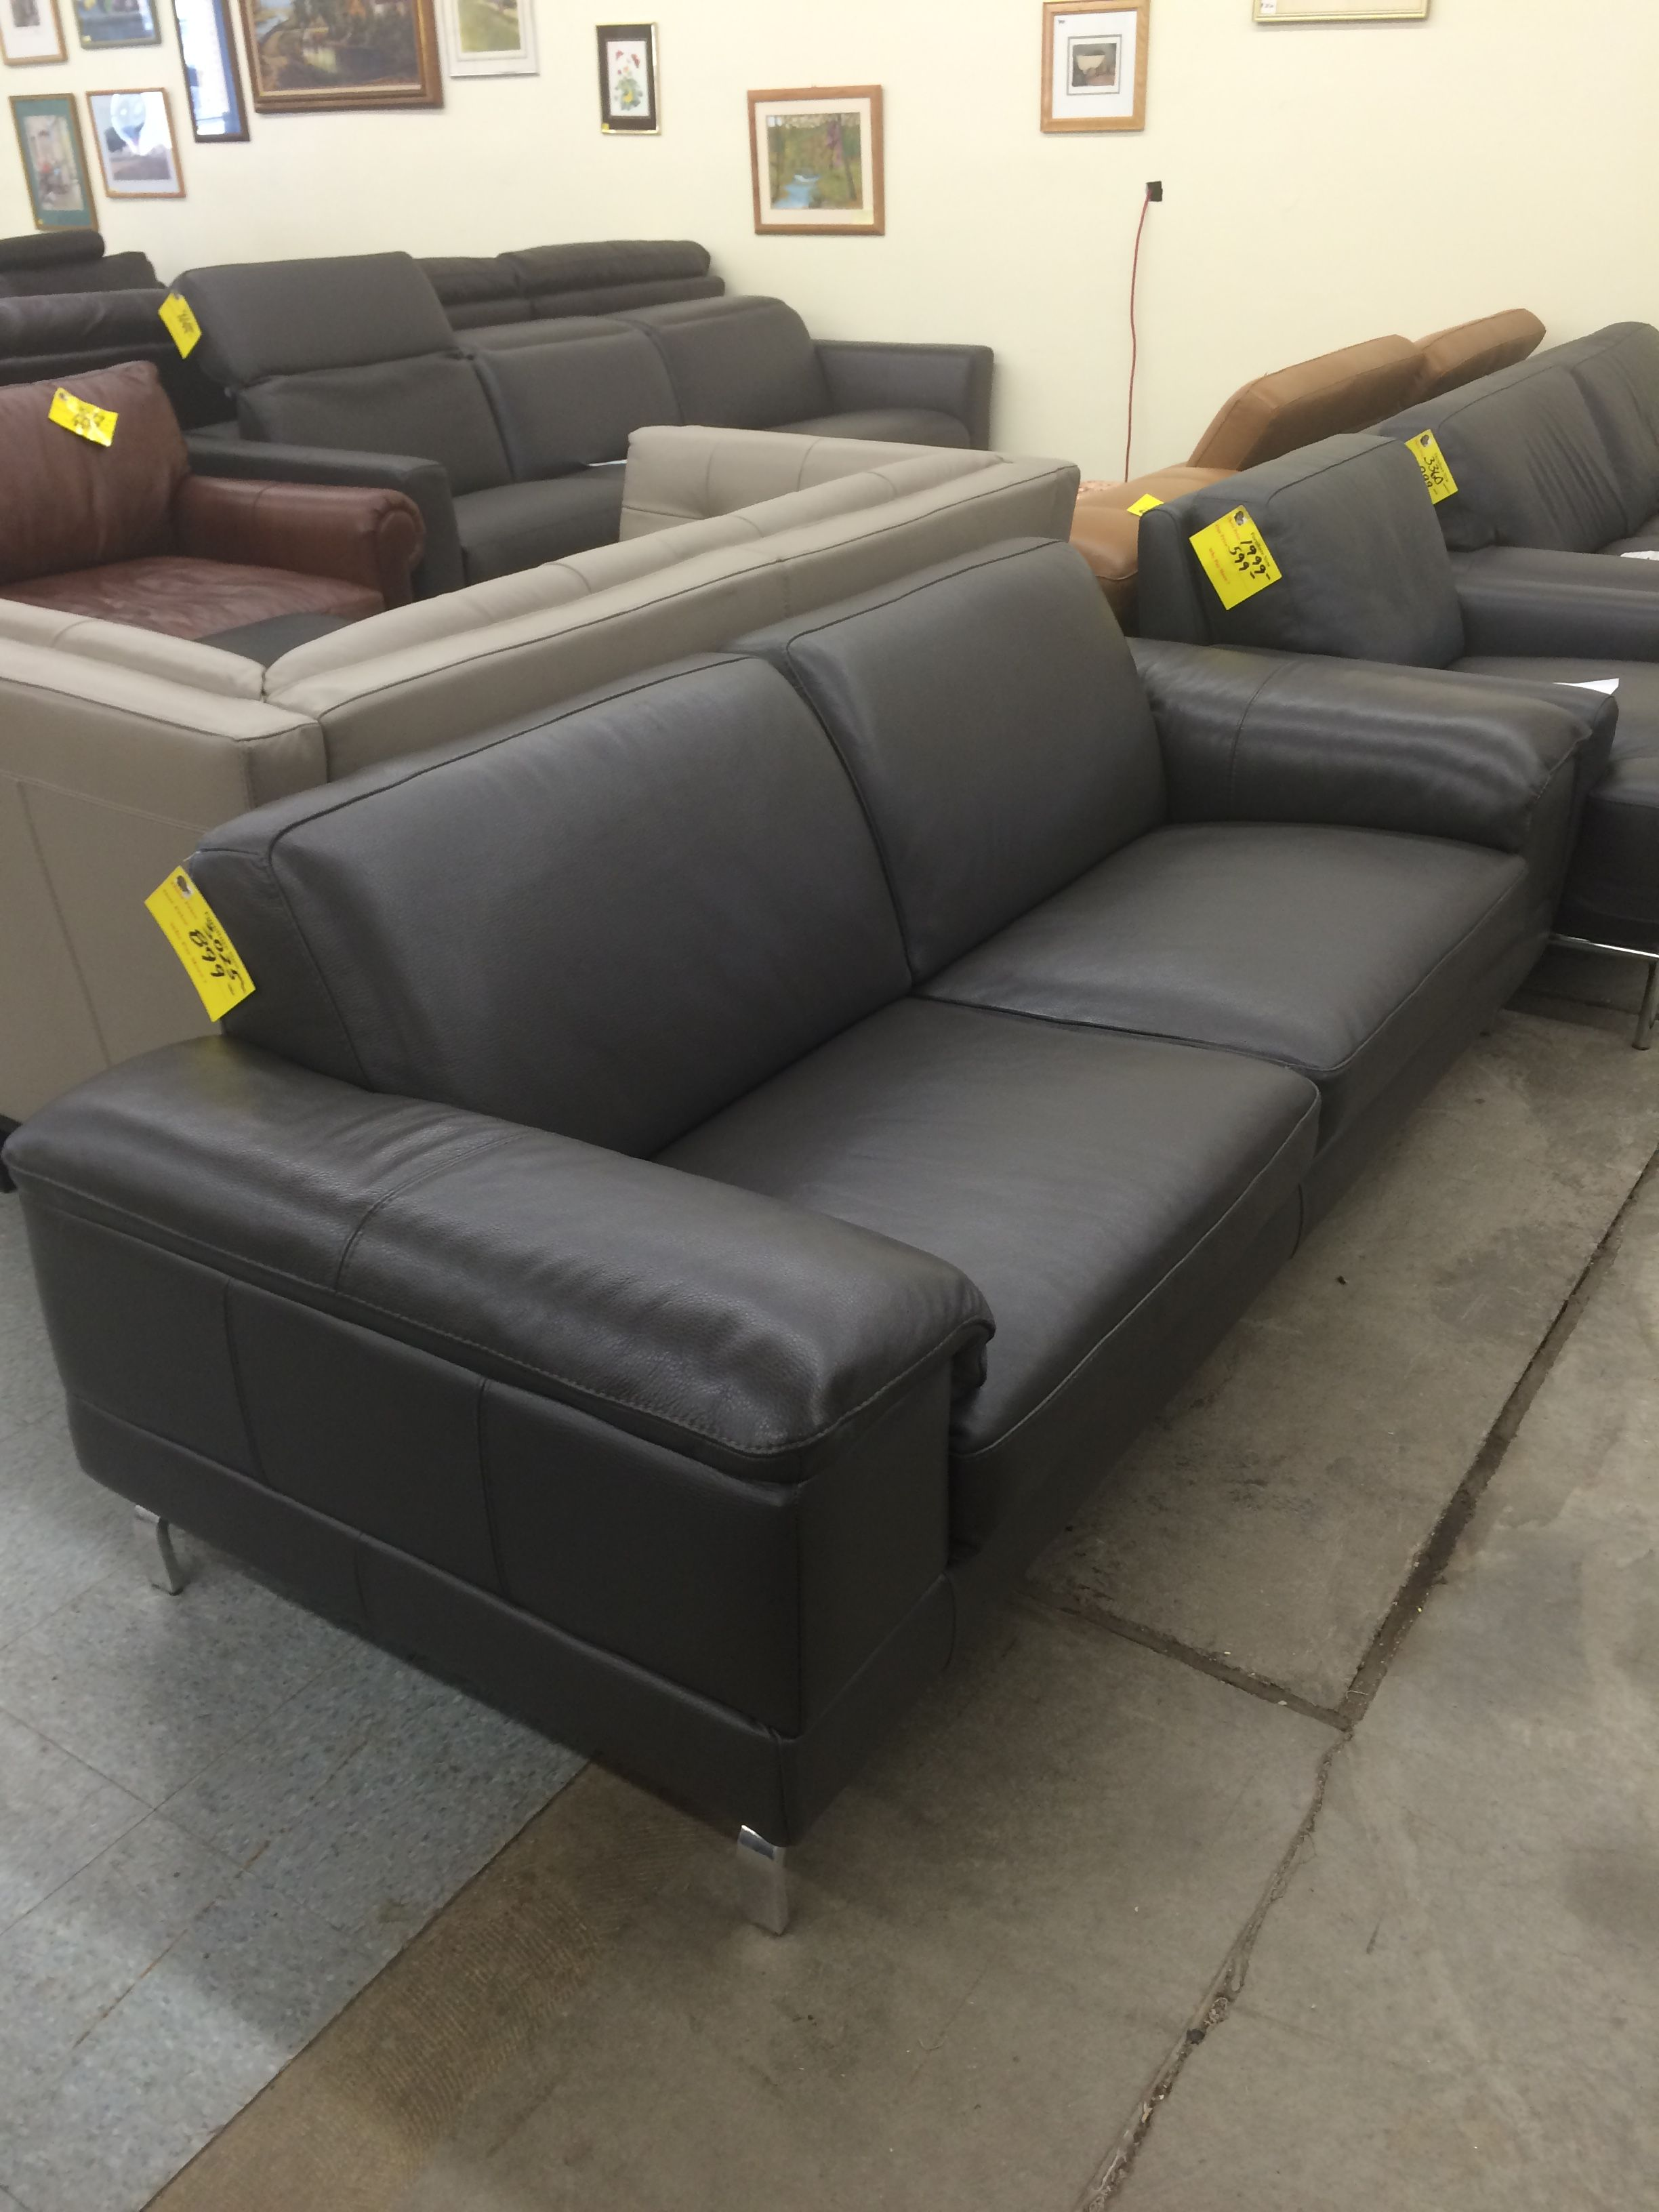 Nicoletti Dorian Leather Sofa 88 W X 37 D 31 H